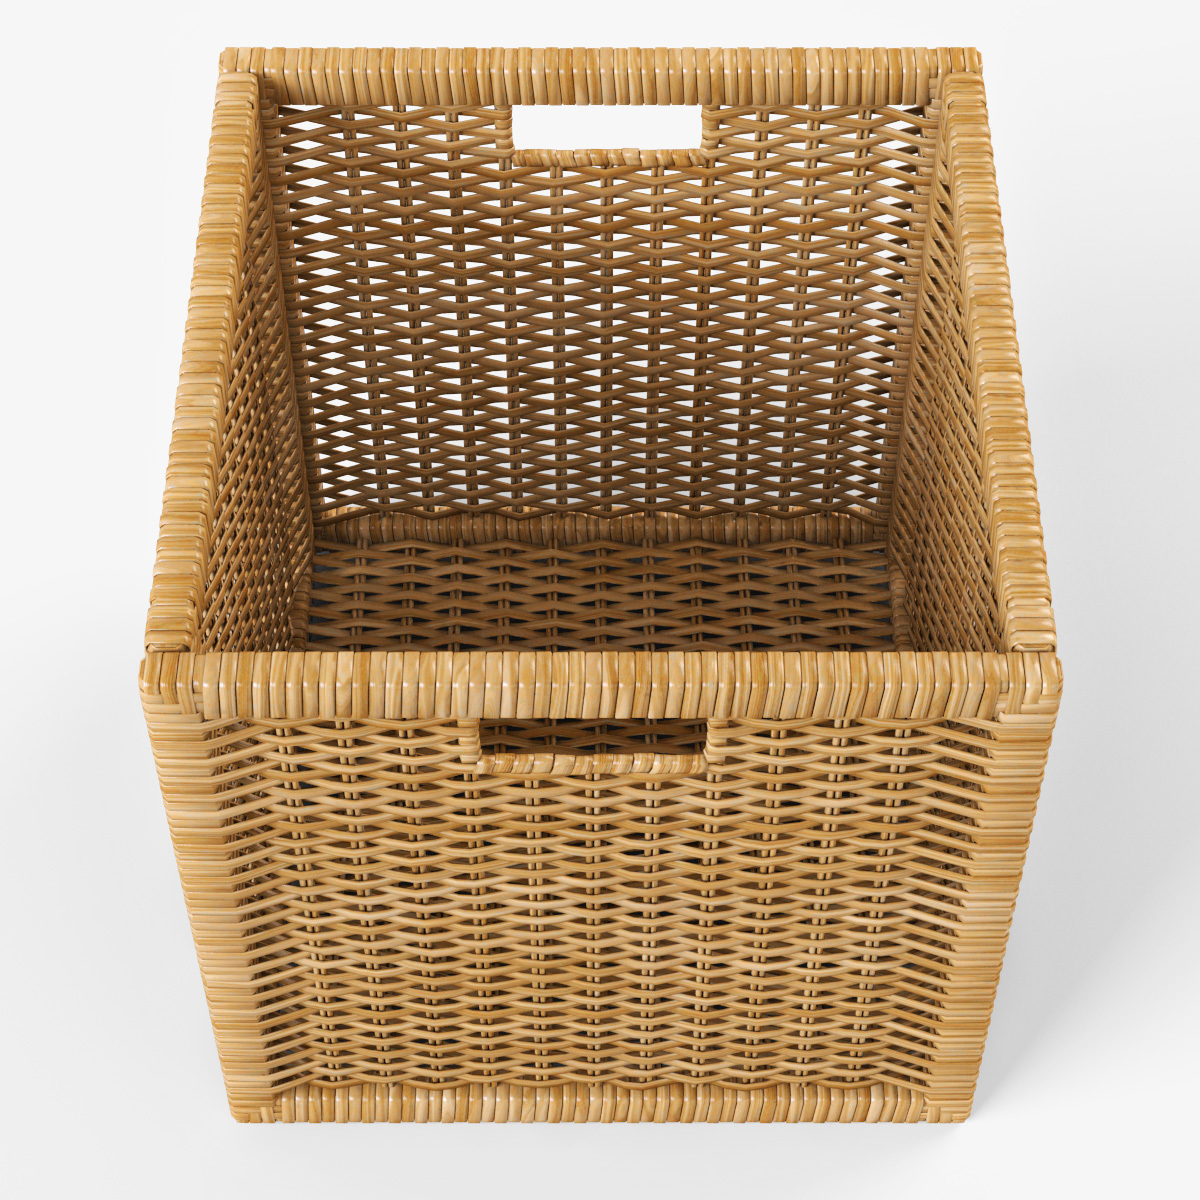 rattan basket ikea branas natural color by markelos. Black Bedroom Furniture Sets. Home Design Ideas